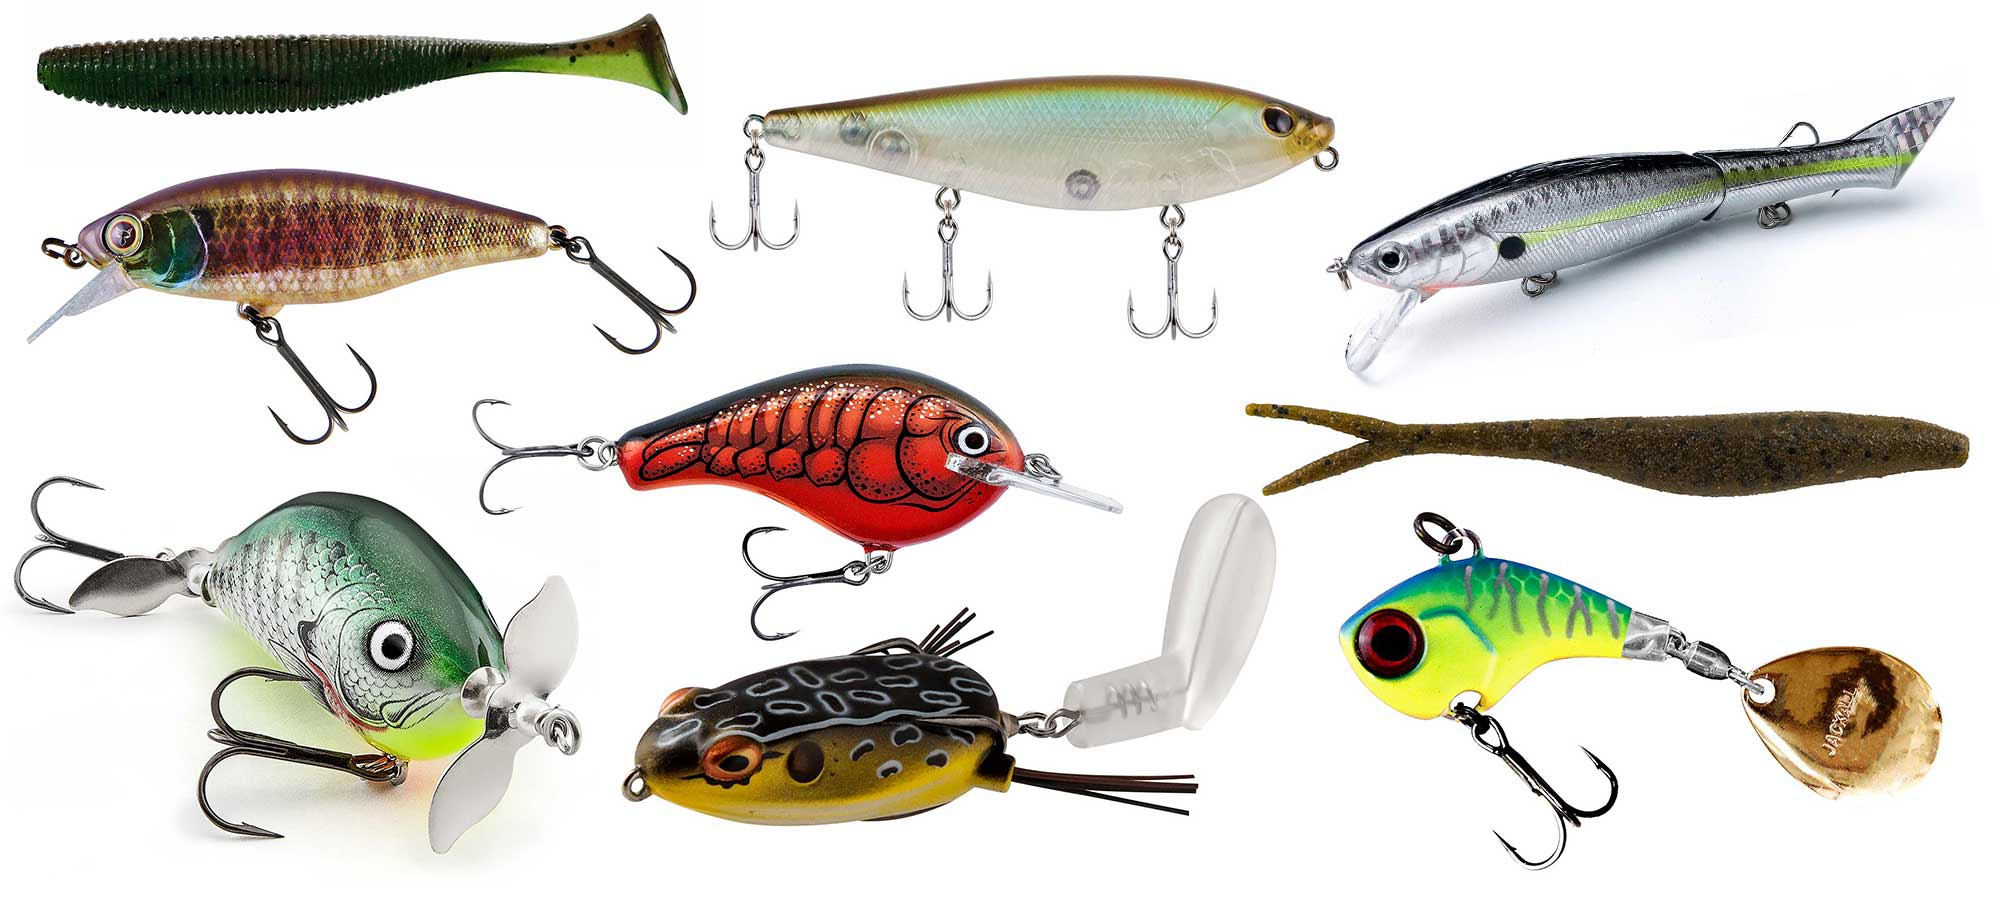 10 Hottest New Baits from the Bassmaster Classic